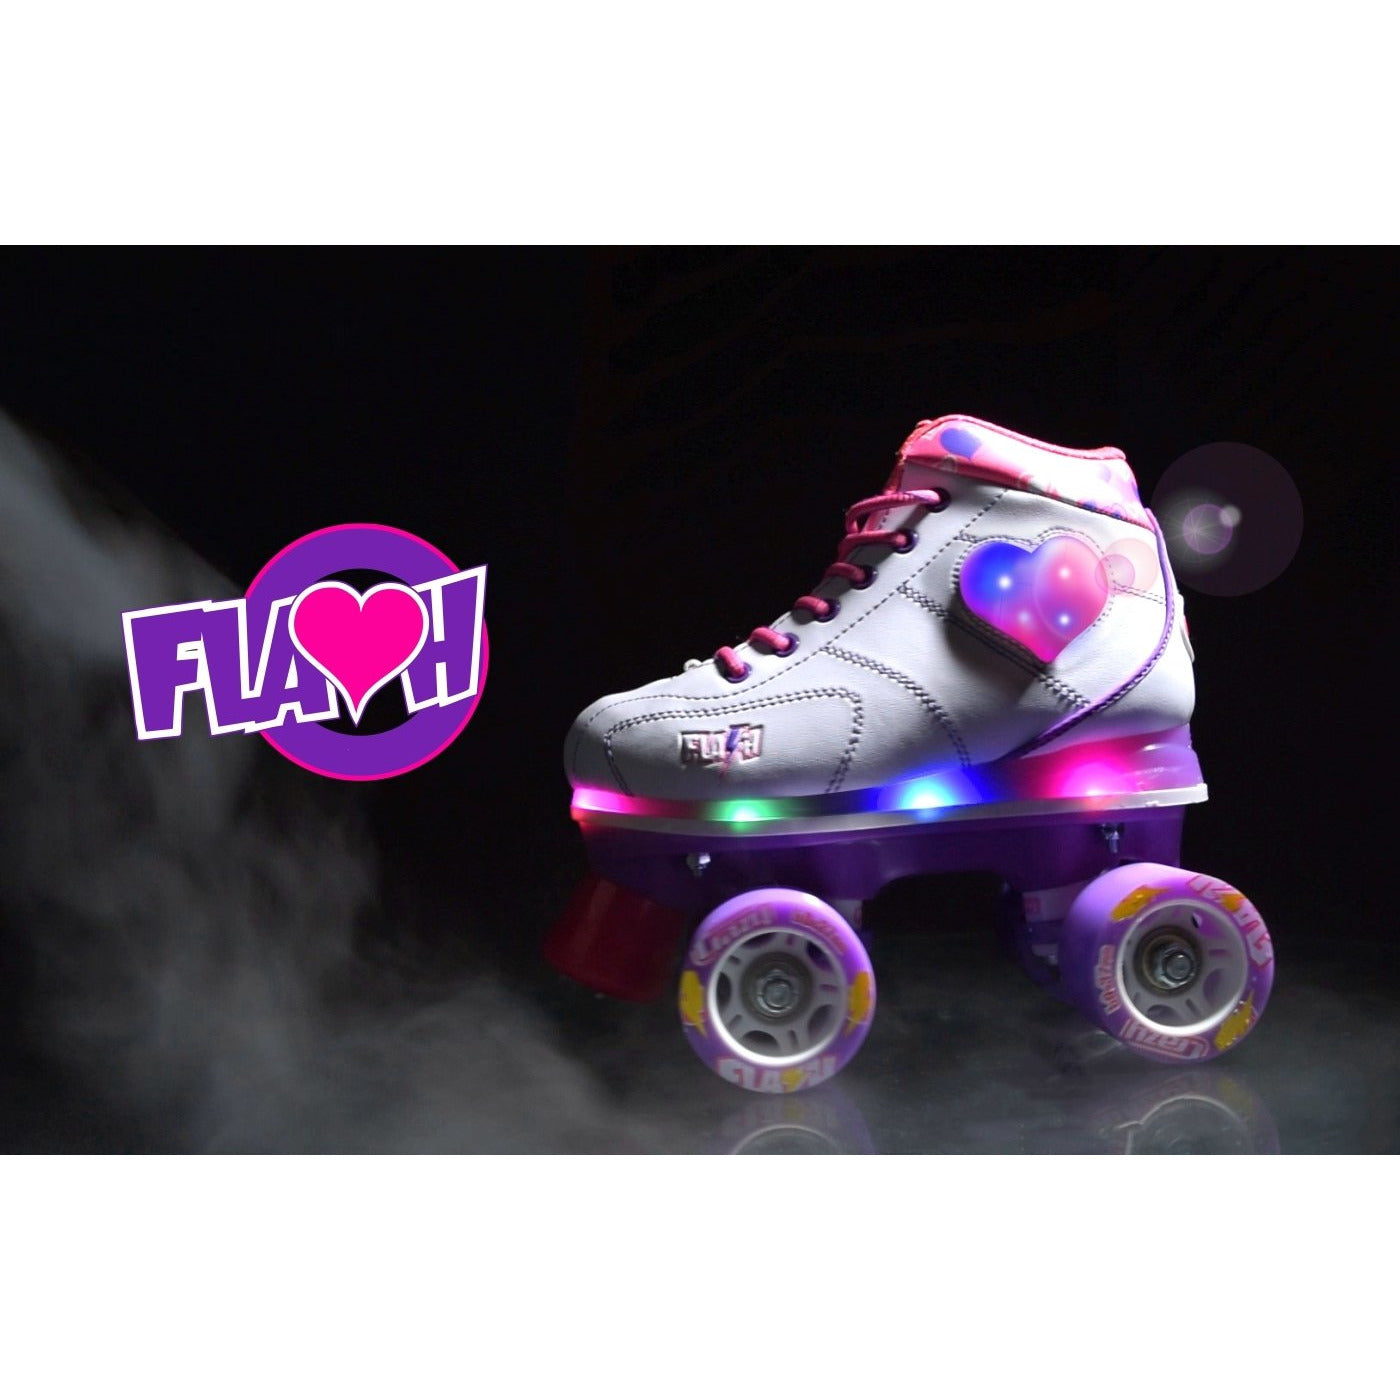 Crazy Skates Flash Roller Skates White (Heart)